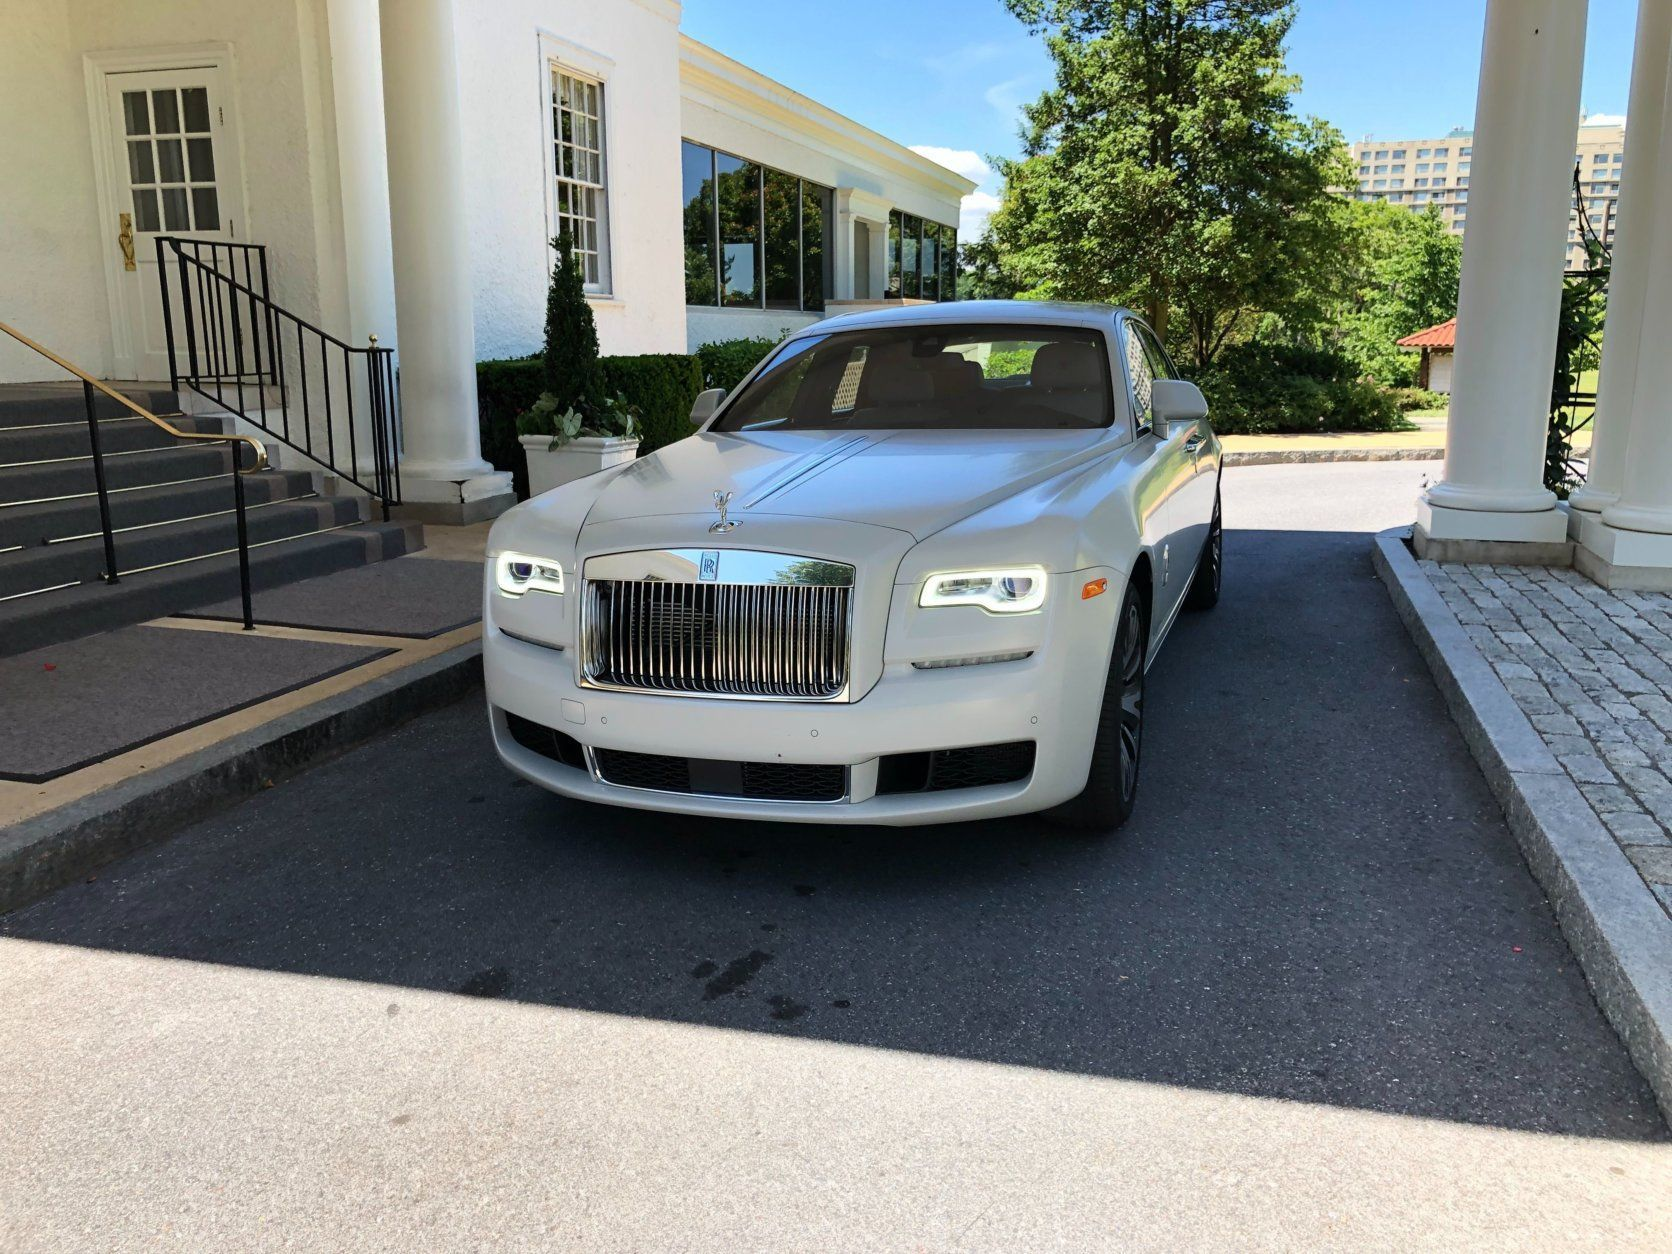 <p>The Ghost is the least expensive way to drive a Rolls-Royce sedan. It has a starting price of $315,000. But there are many options and packages to choose from, and my test car clocked in at an eye-popping $428,900.</p> <p>While you might think the Rolls-Royce is a better car to be driven around in as a passenger, that's not the case with the Ghost, which provides an exquisite driving experience.</p> <p>While a large car, the Ghost is smaller than other Rolls-Royce sedans, making driving easier overall. It takes a few minutes to get used to the light steering and larger size, and you sit up higher than a normal sedan.</p> <p>While large, the Ghost is no slouch thanks to a twin-turbo V12 engine with 563 horsepower.</p>